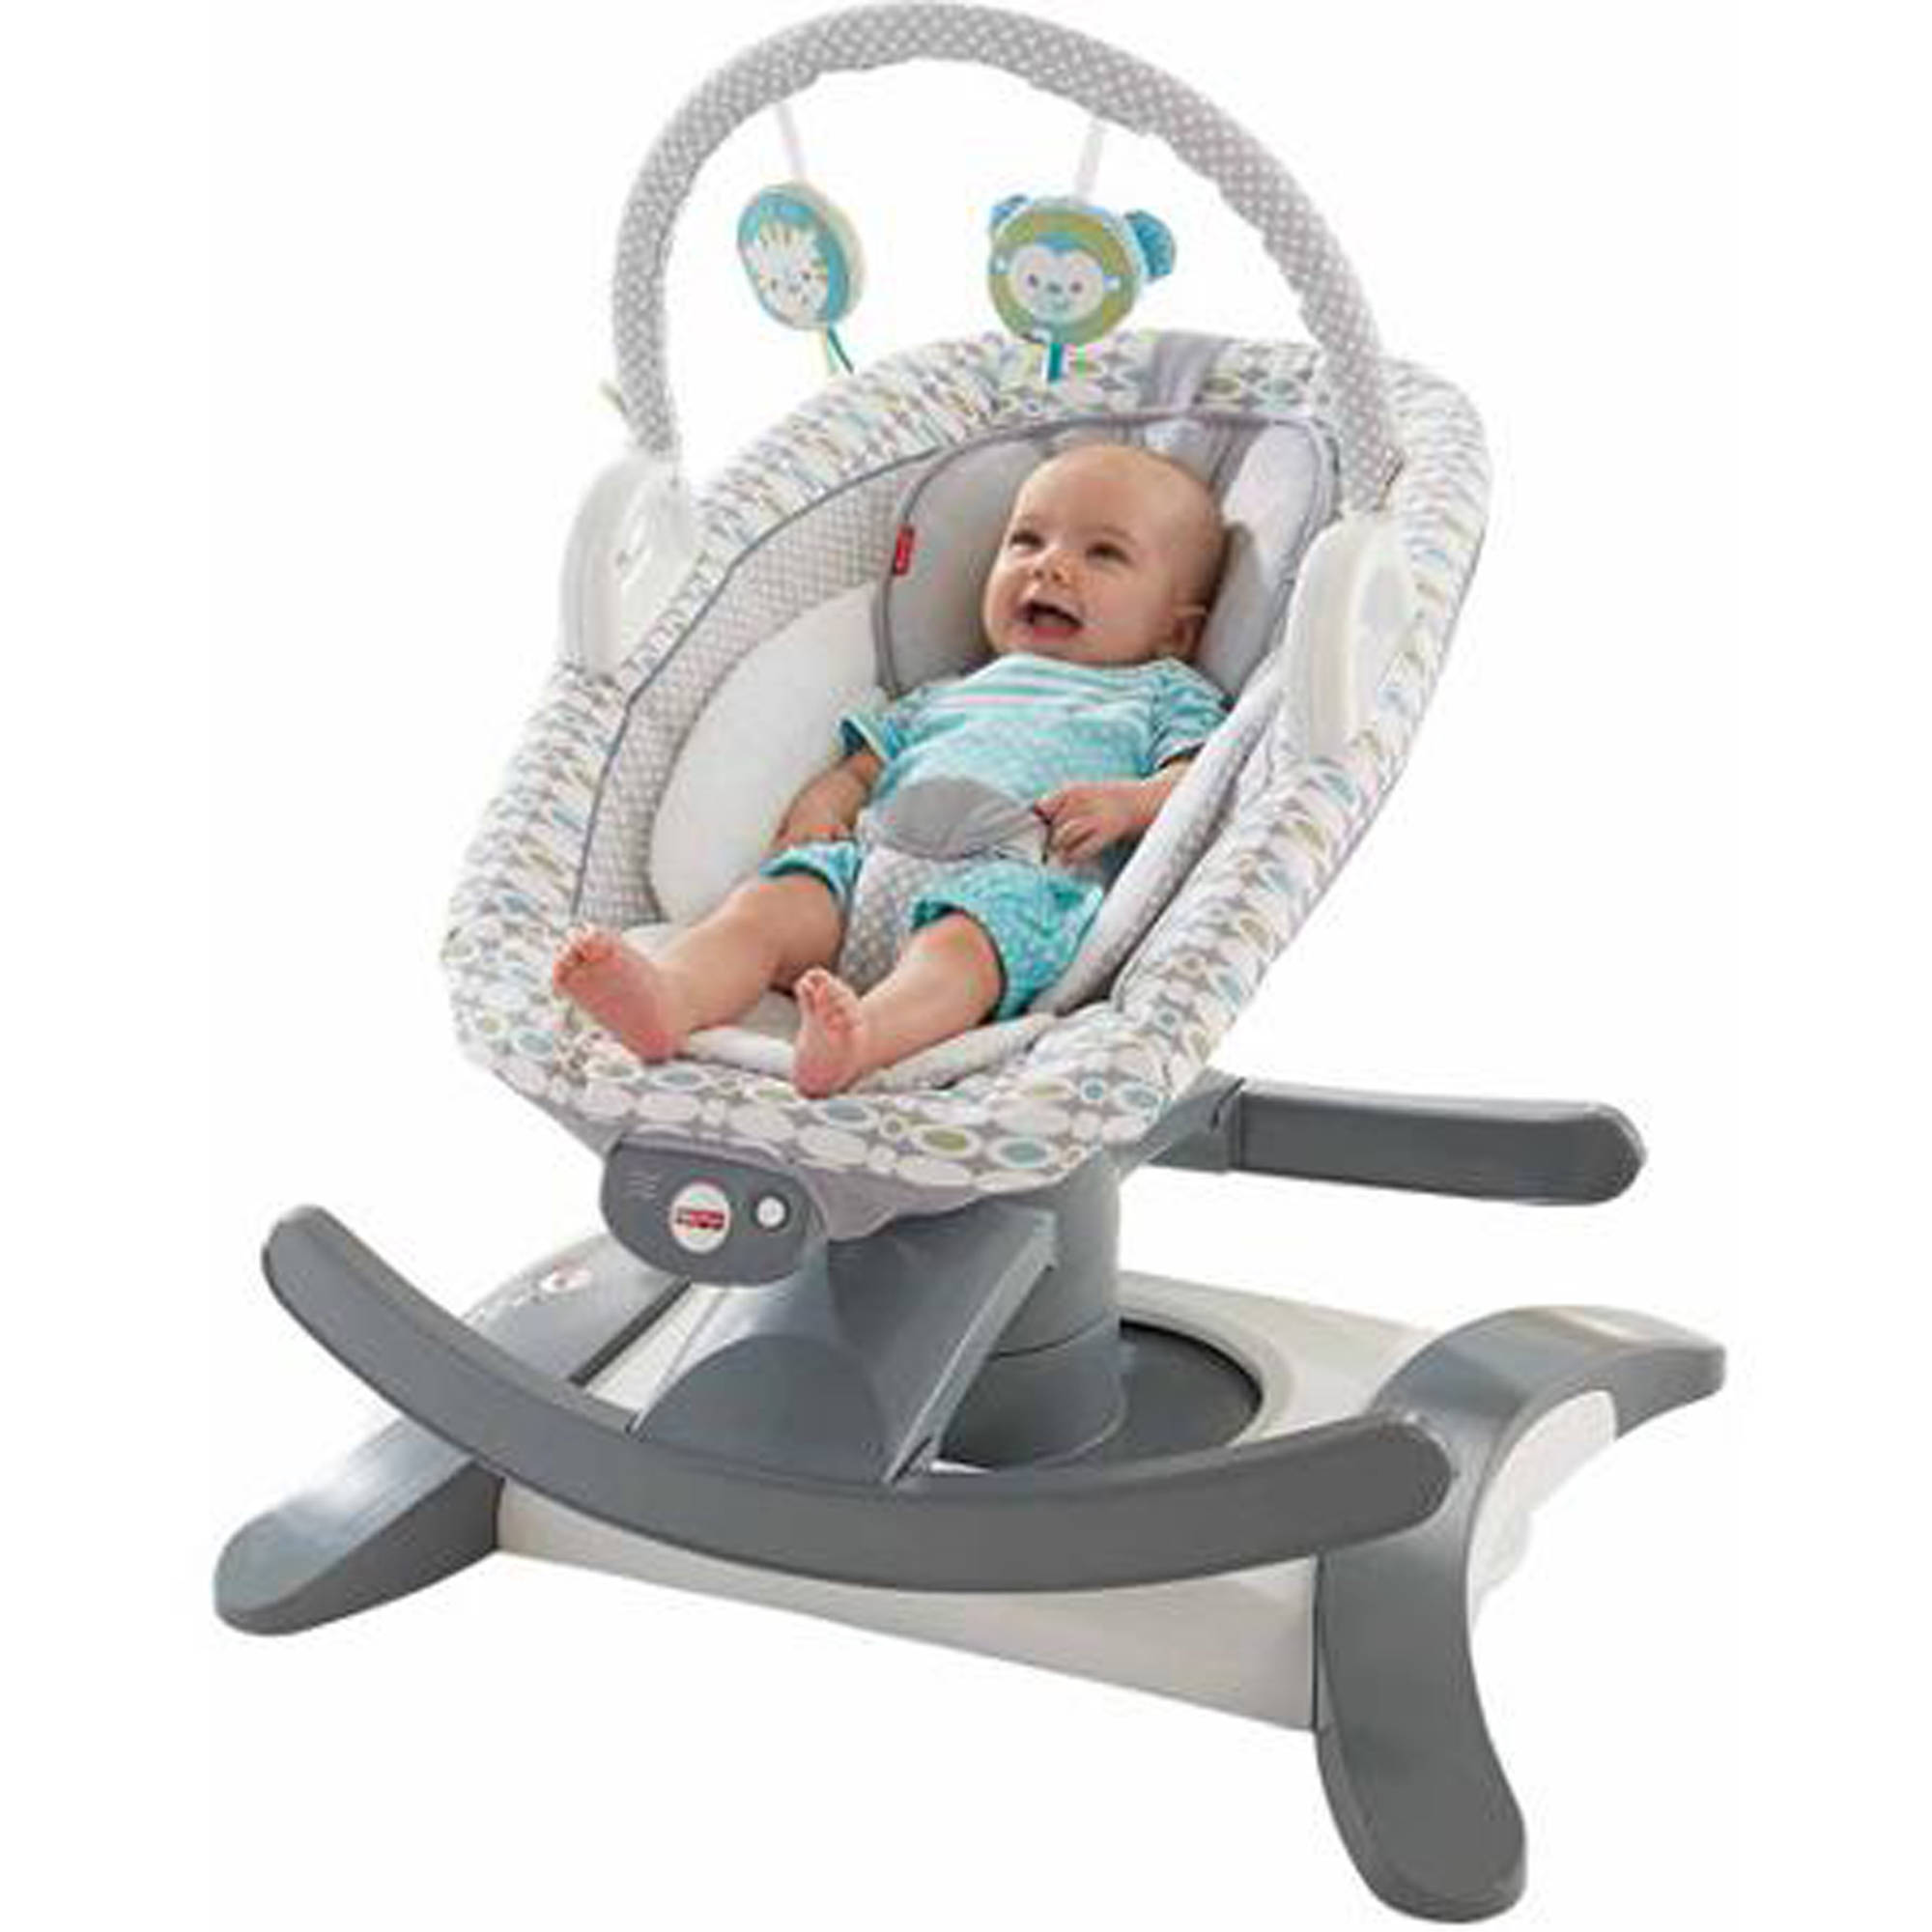 Bouncer Baby Graco Duet Connect Lx Baby Swing And Bouncer